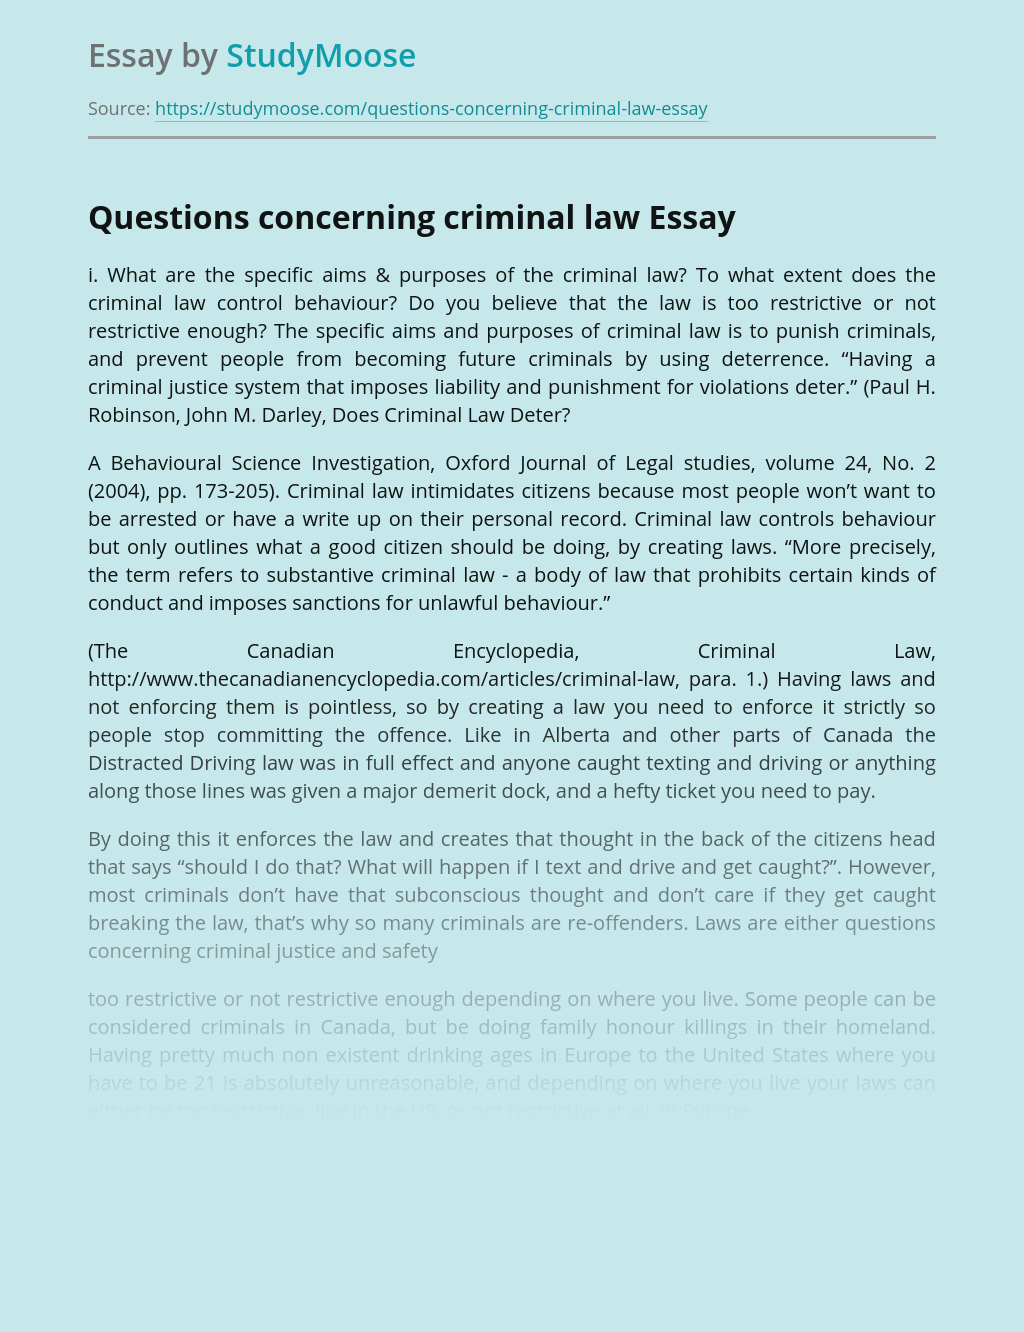 Questions concerning criminal law